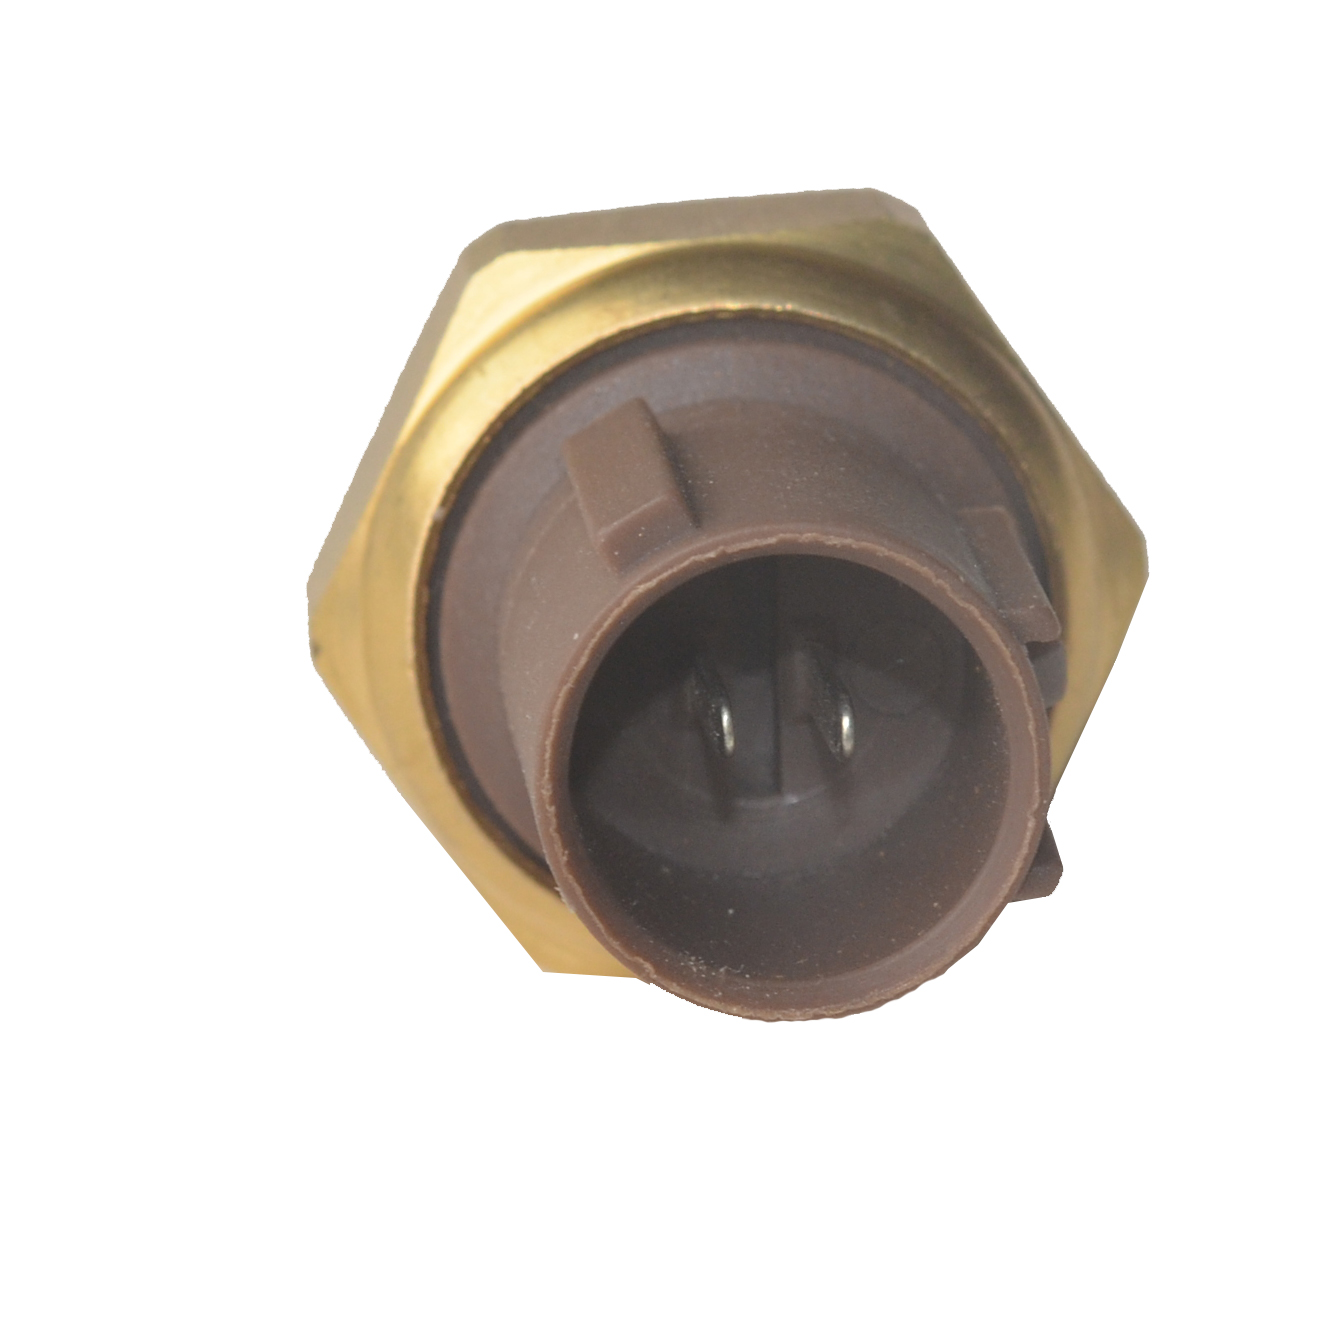 Engine Radiator Cooling Fan Sensor Switch 37760 P00 003 For Honda Who Makes Coolant Civic Acura Water